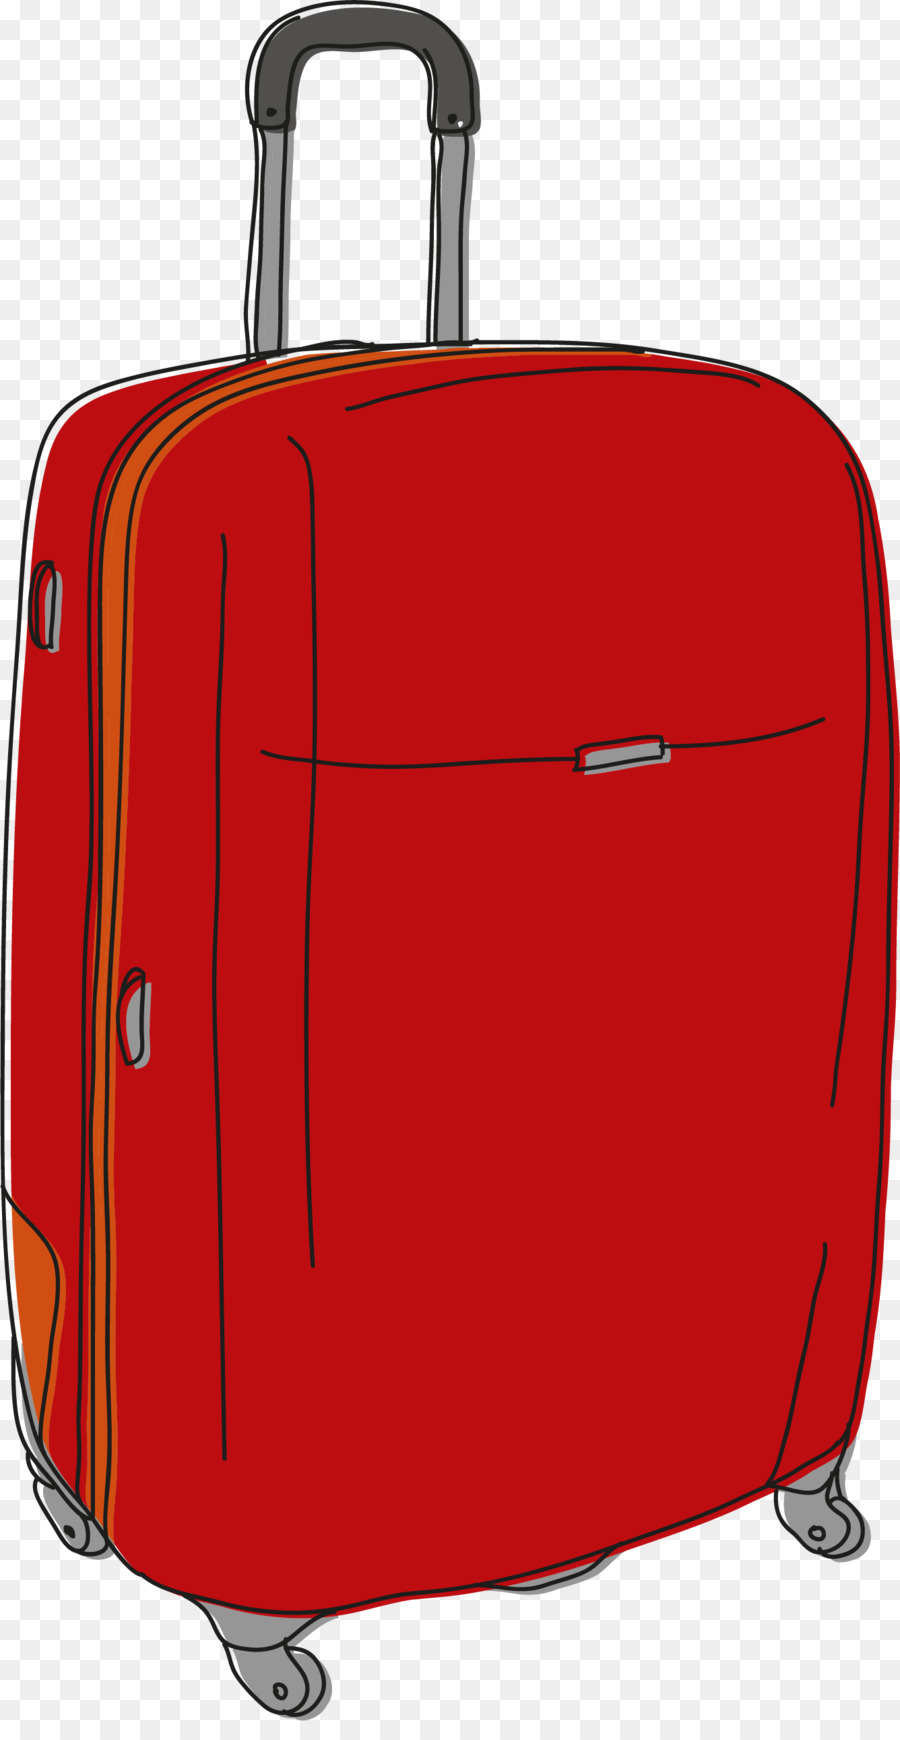 900x1740 Hand Luggage Suitcase Baggage Drawing